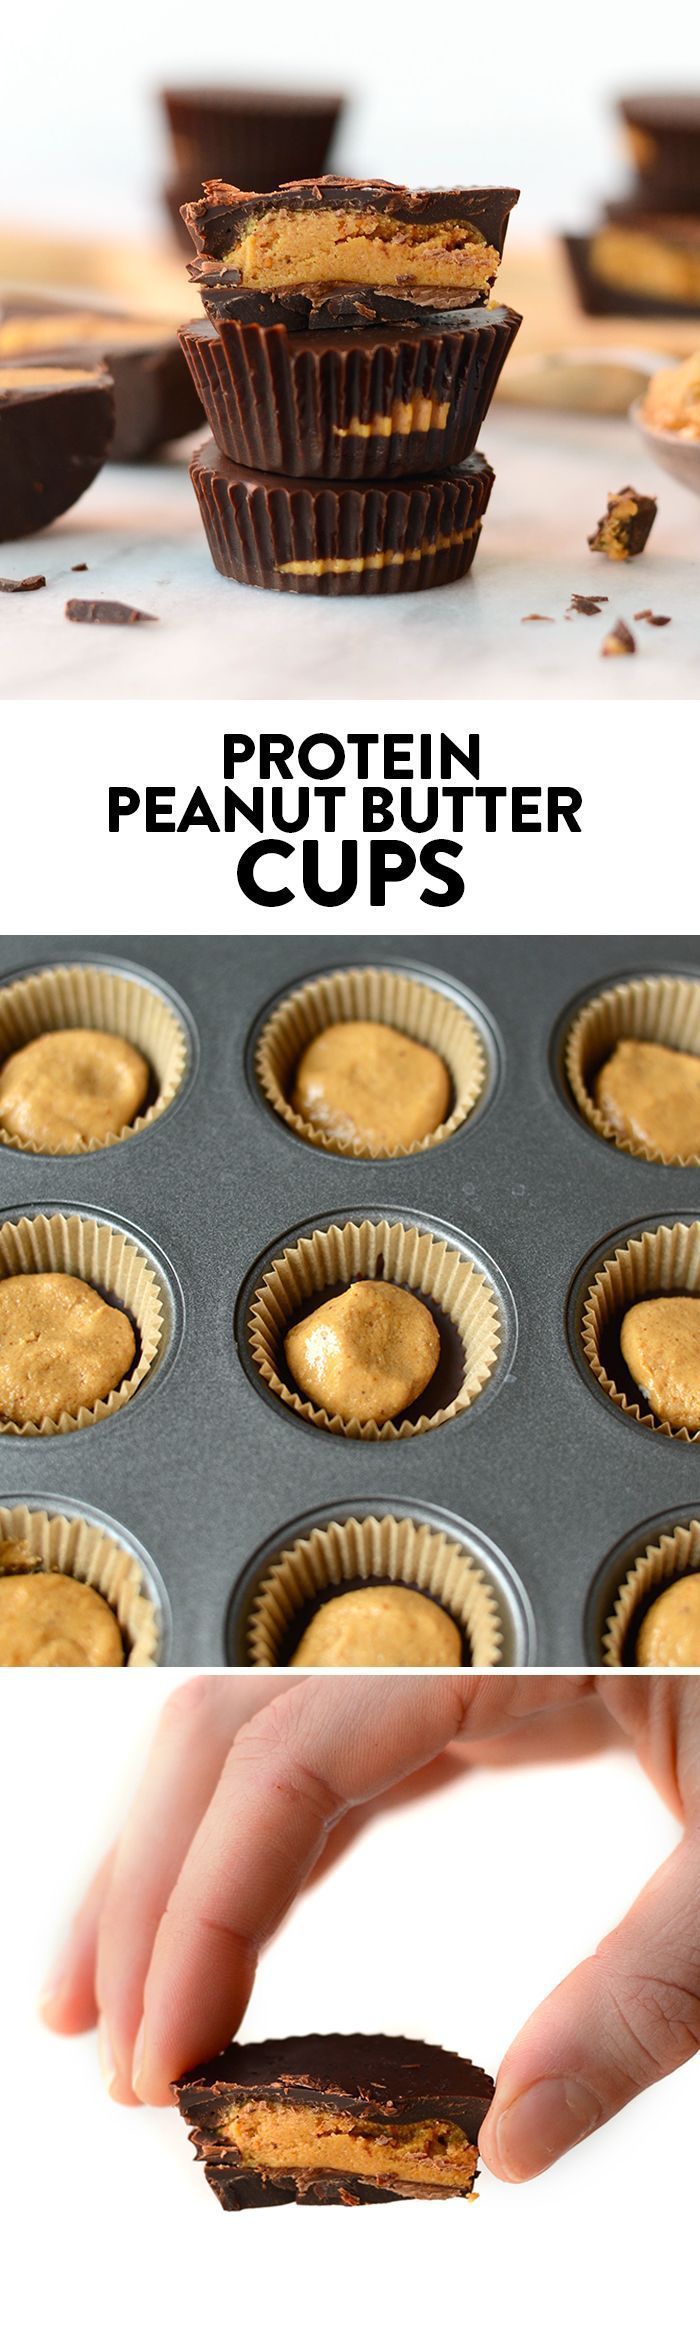 What's better than a peanut butter cup? A peanut butter cup amped with extra protein! Make these delicious protein p